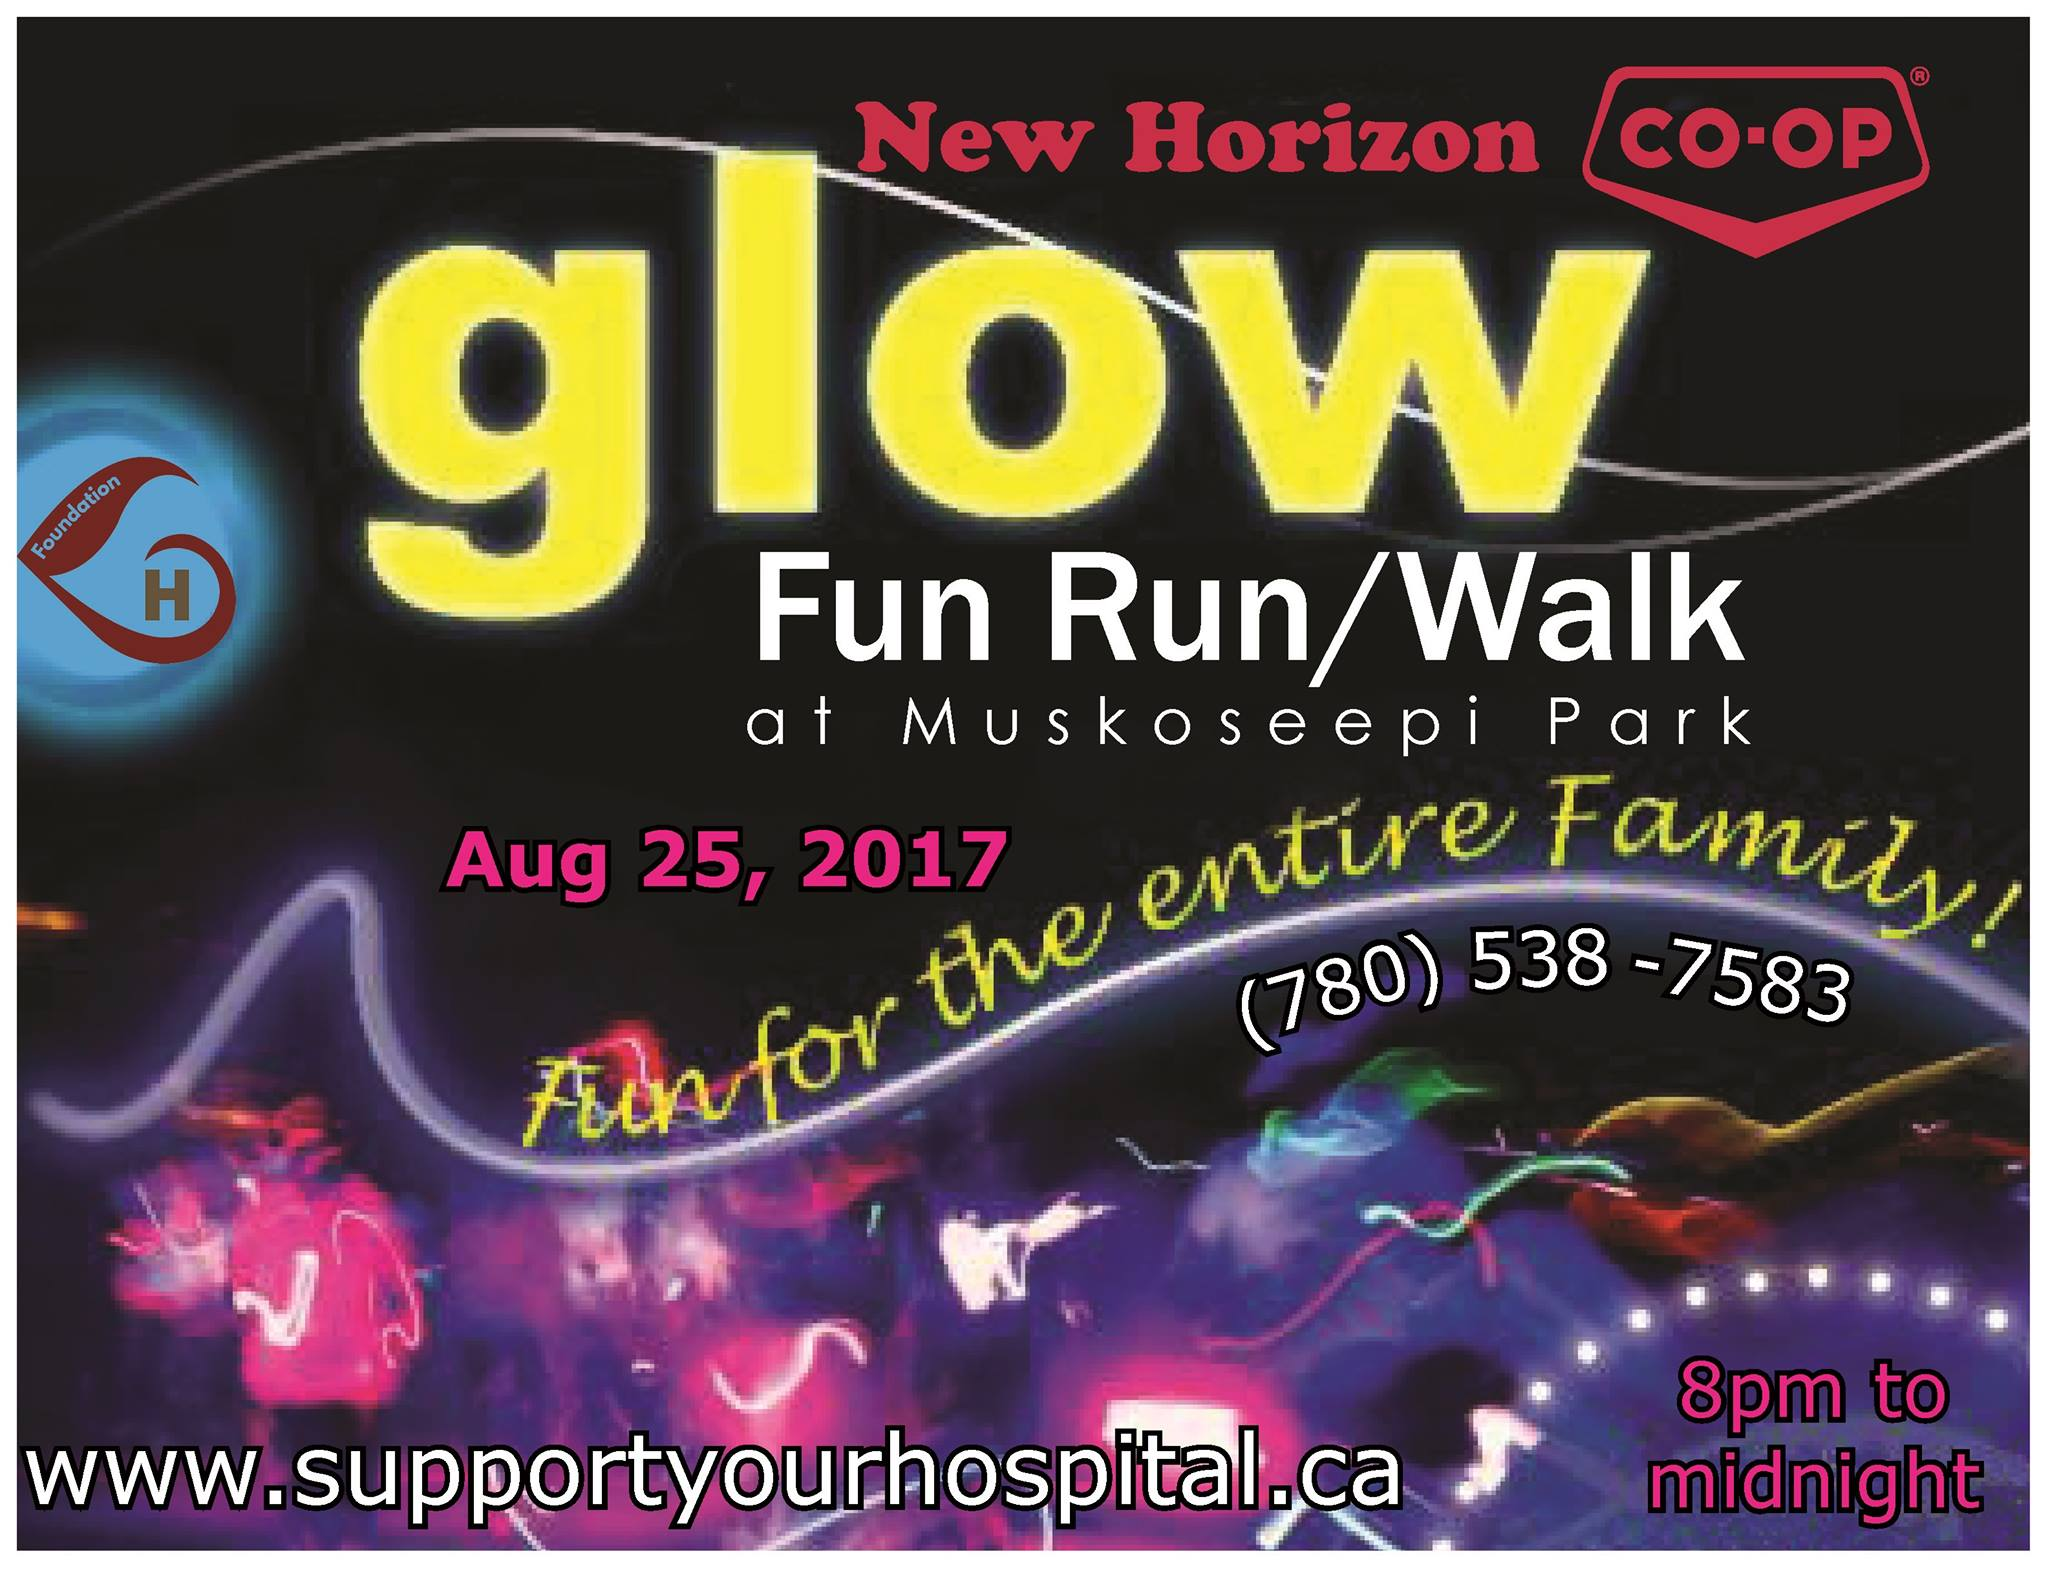 Third Annual Glow Fun Run/Walk takes place August 25